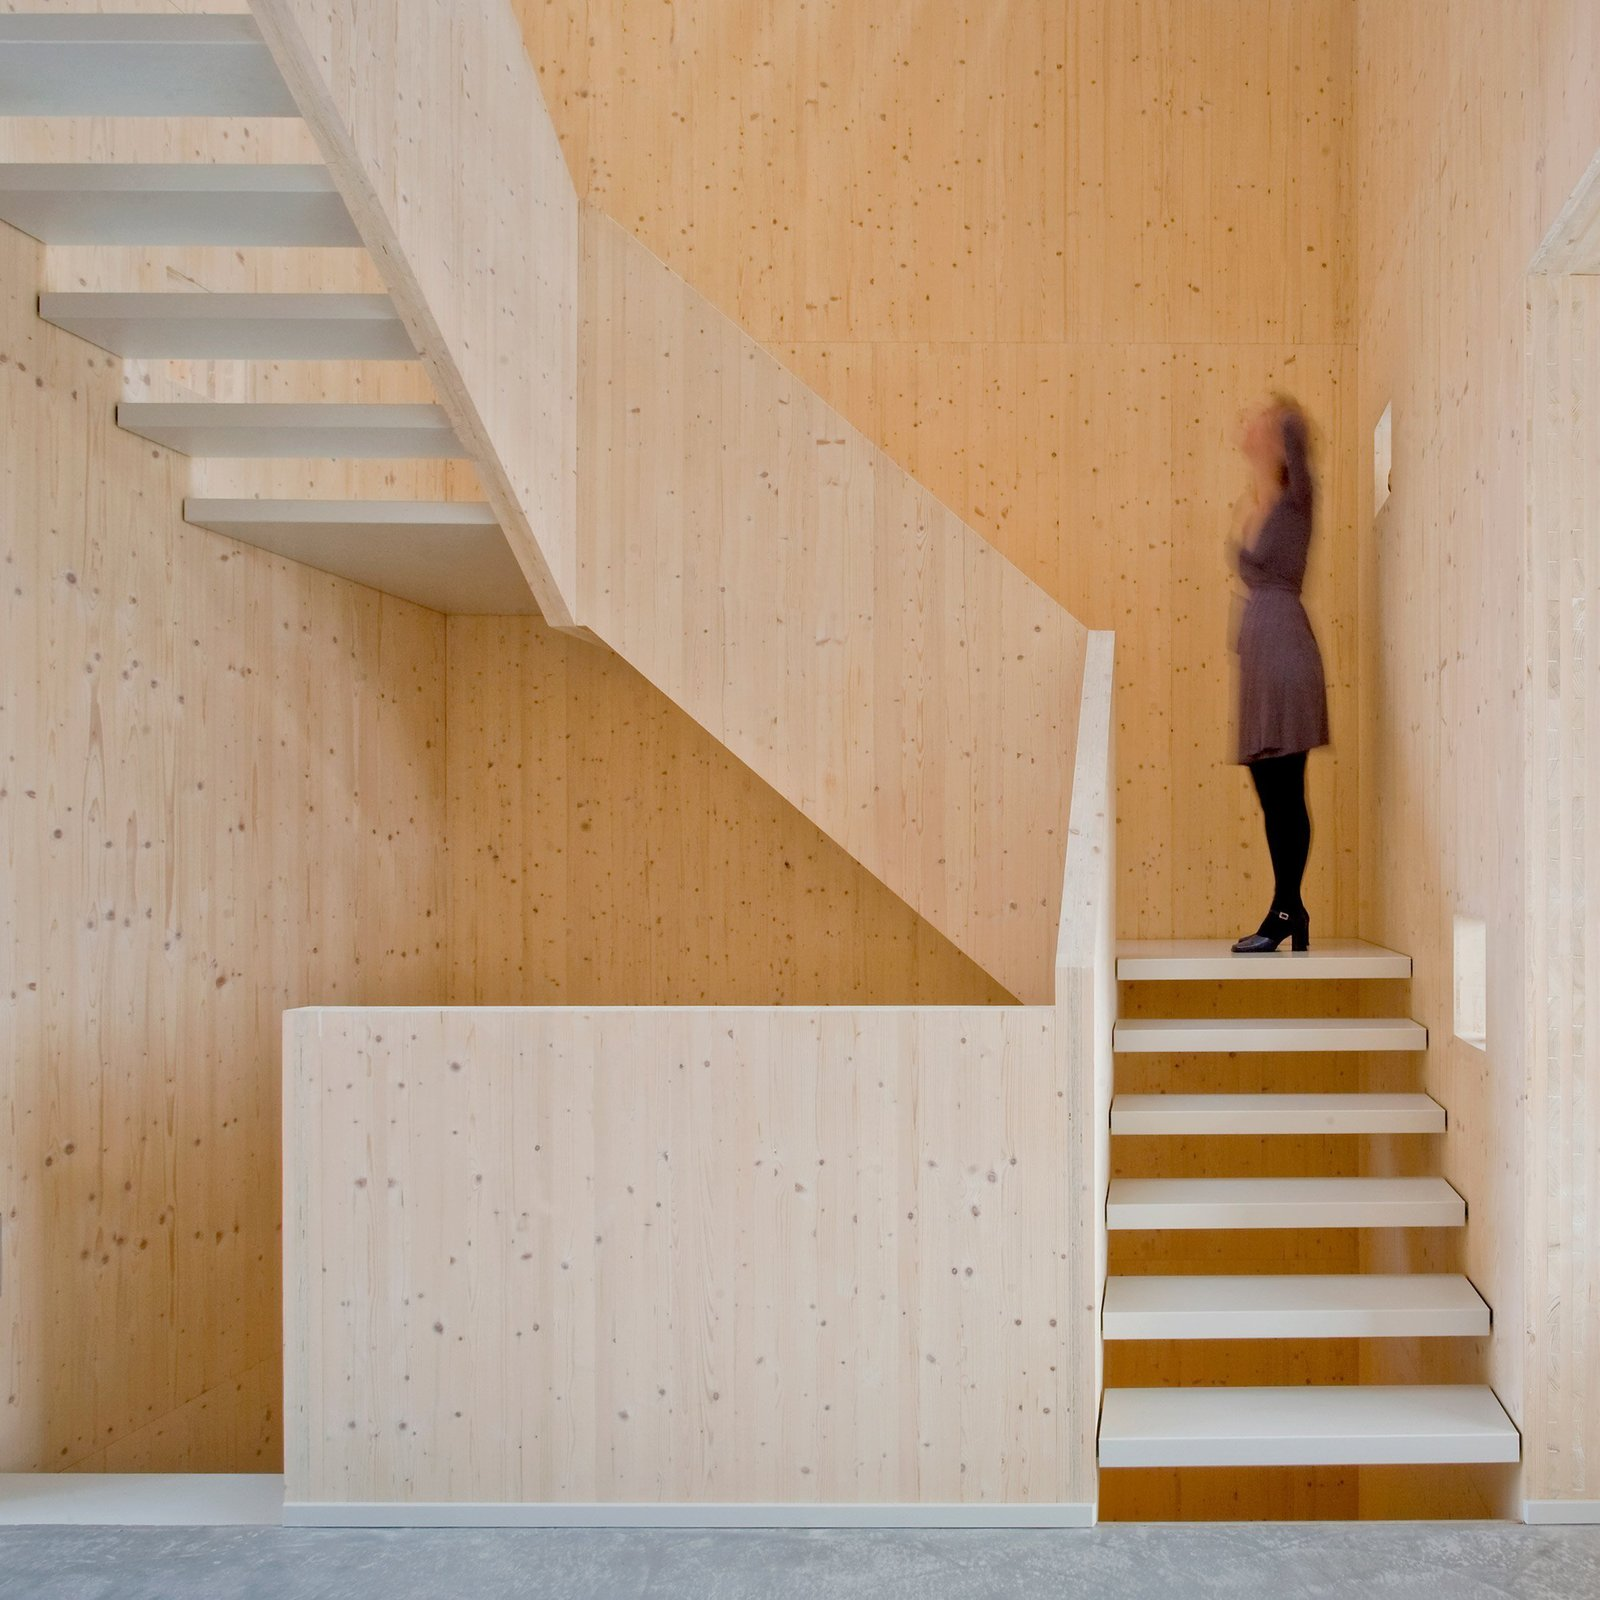 Via Dezeen, photo by Marcel van der Burg  Photo 6 of 11 in This Week's 10 Best Houses